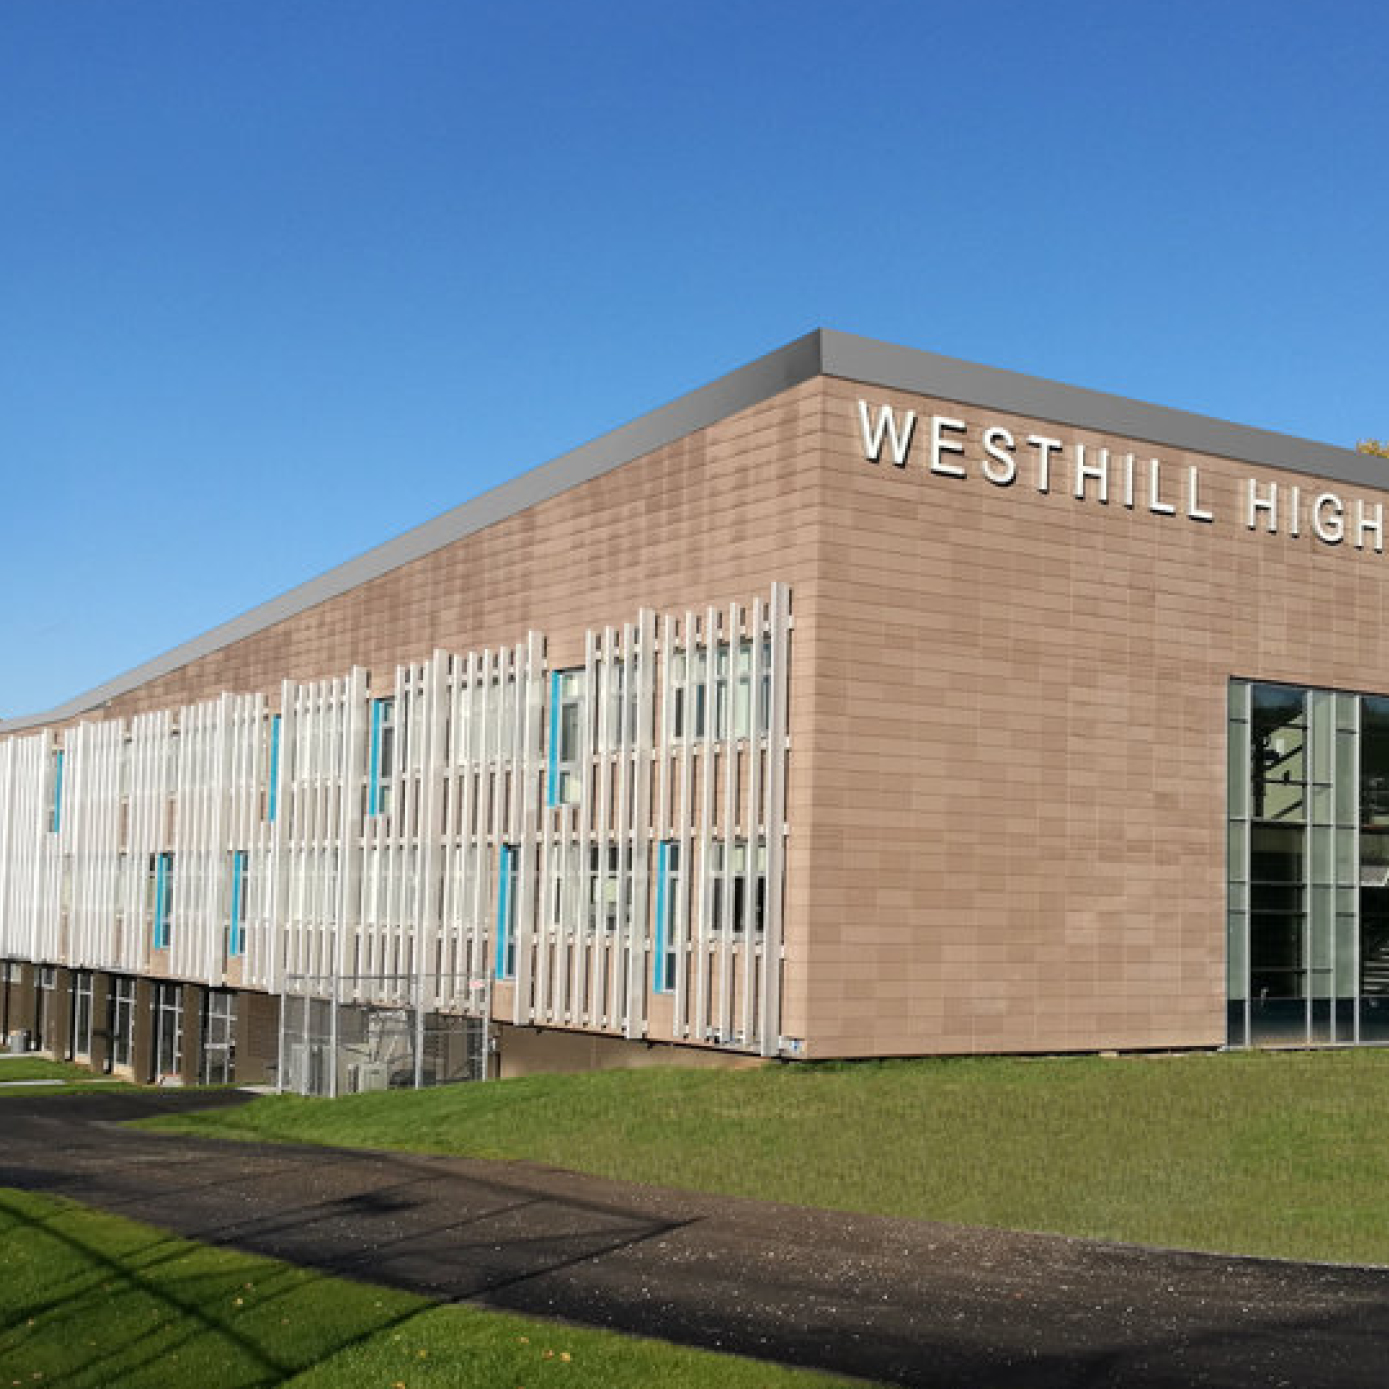 WESTHILL HIGH SCHOOL - RENOVATIONS designed to positively impact education and the environment